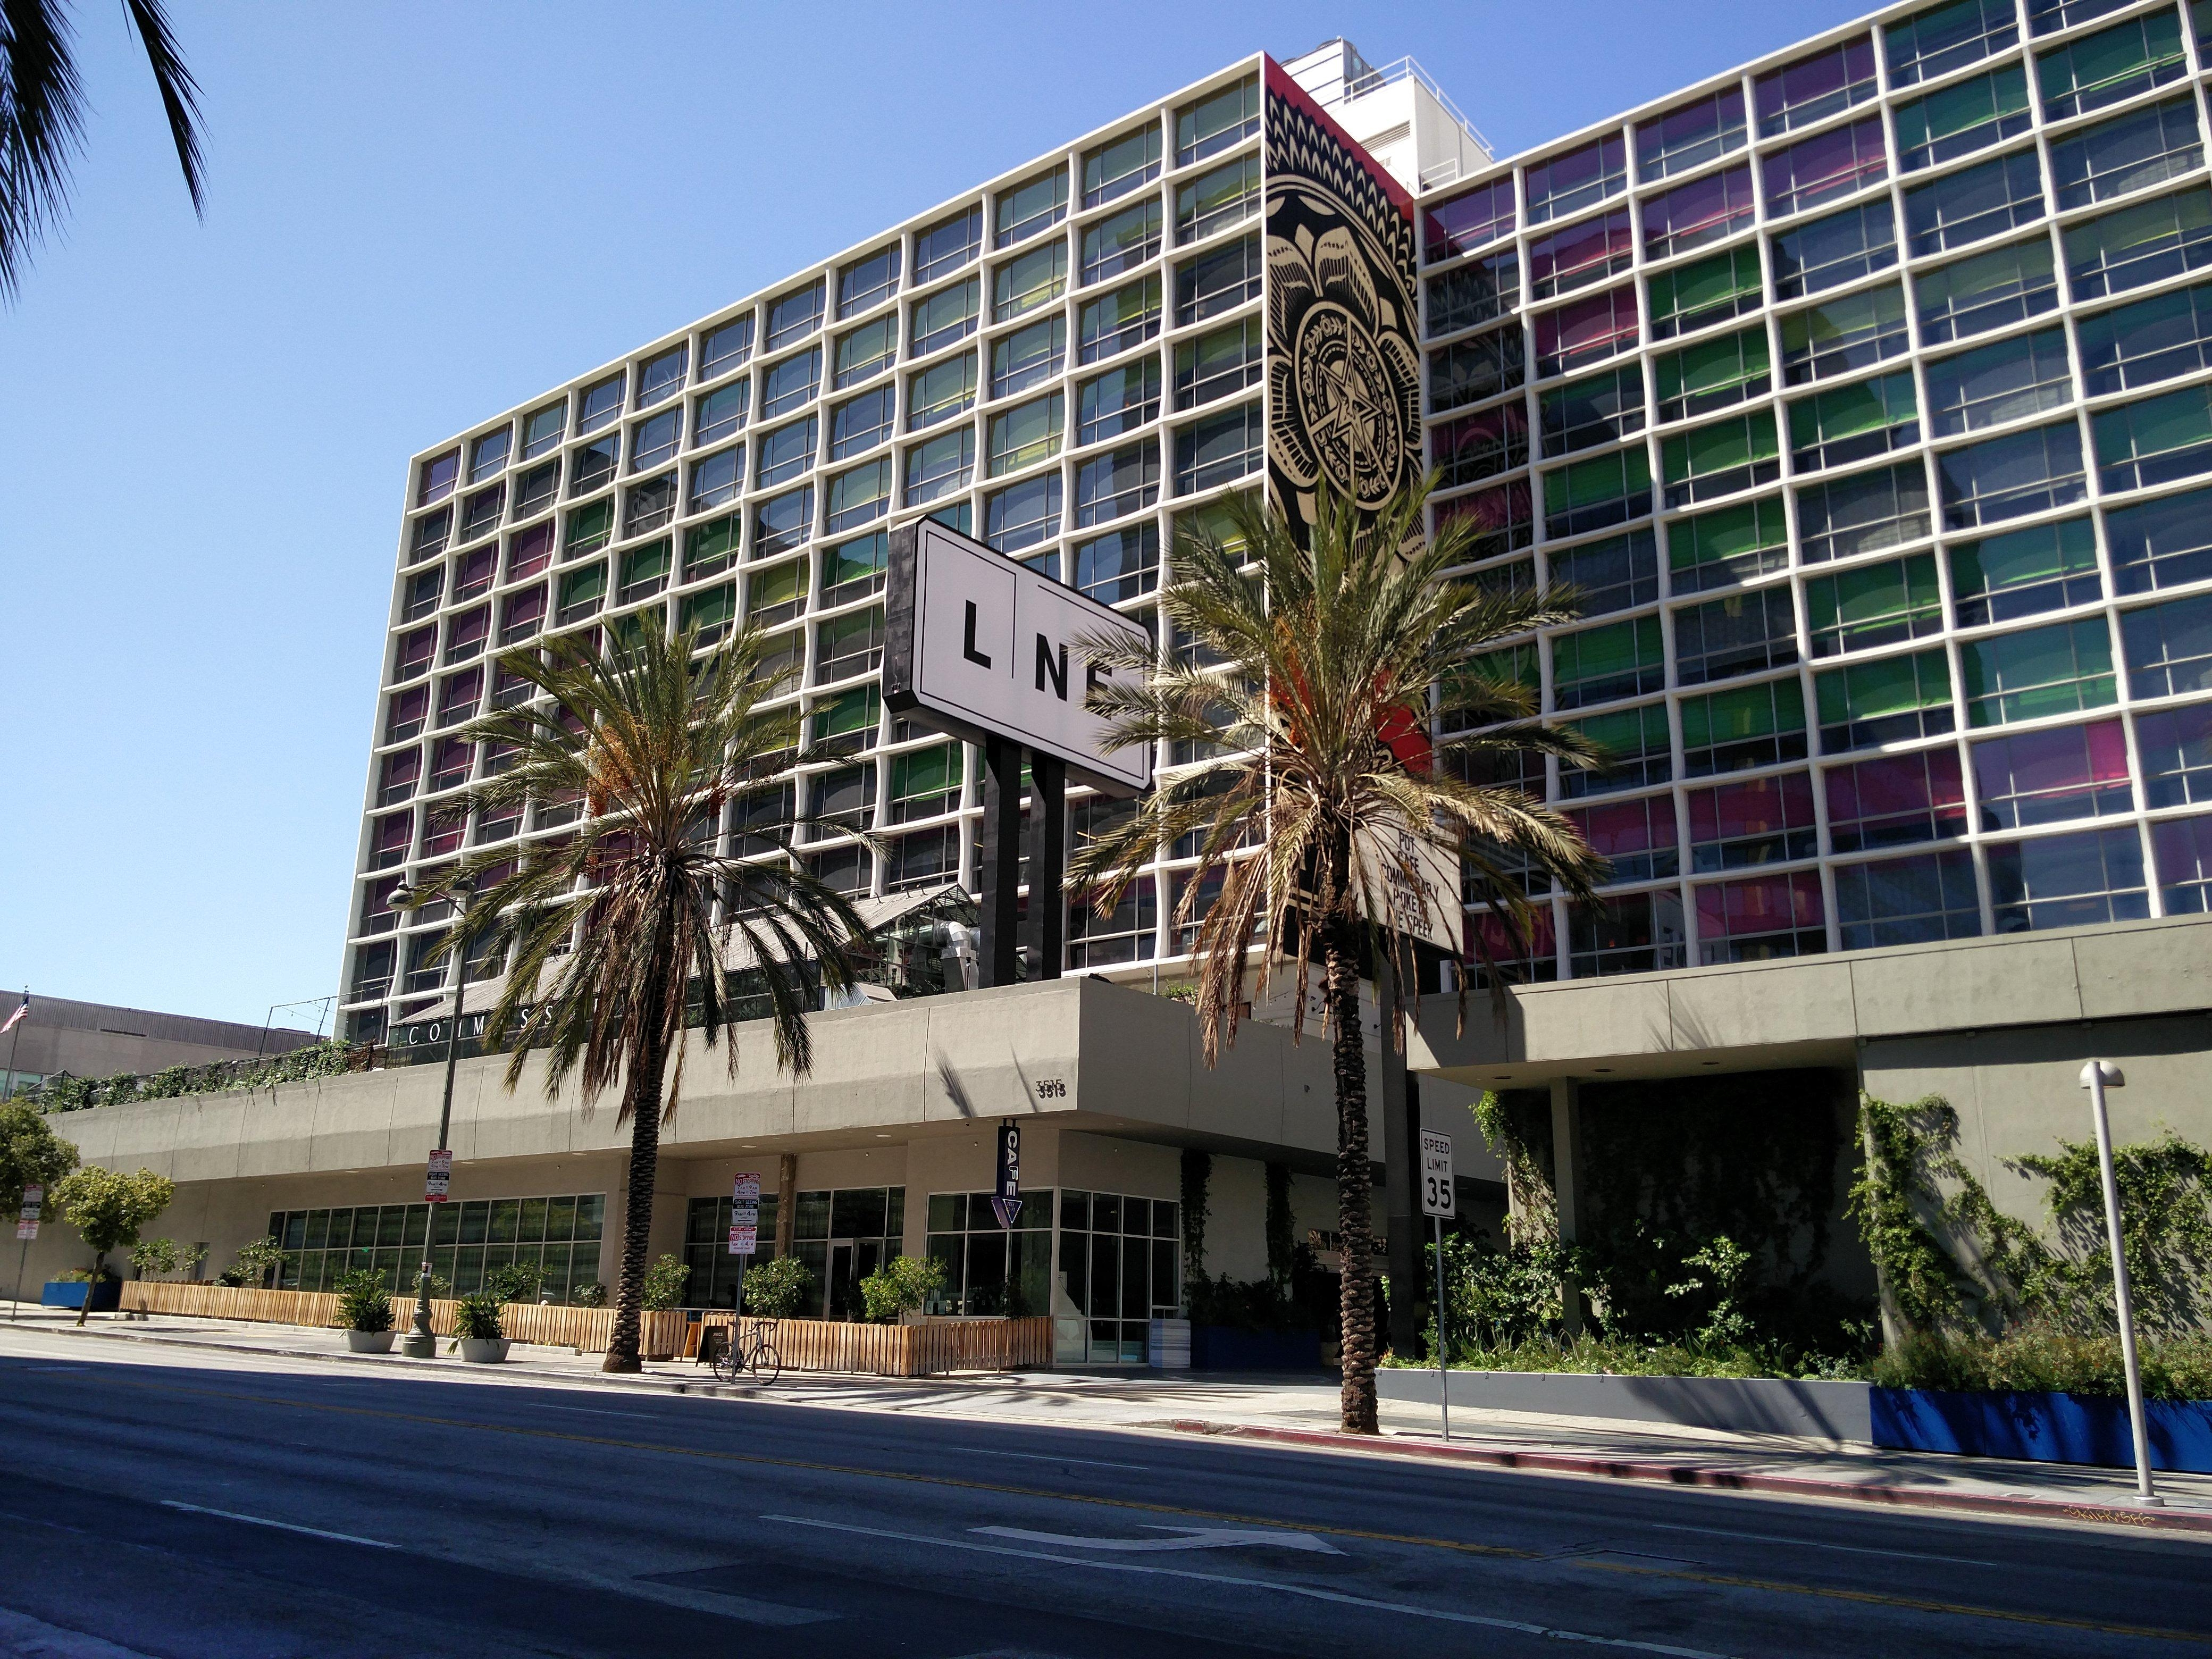 ... The Line Hotel - Los Angeles. $36